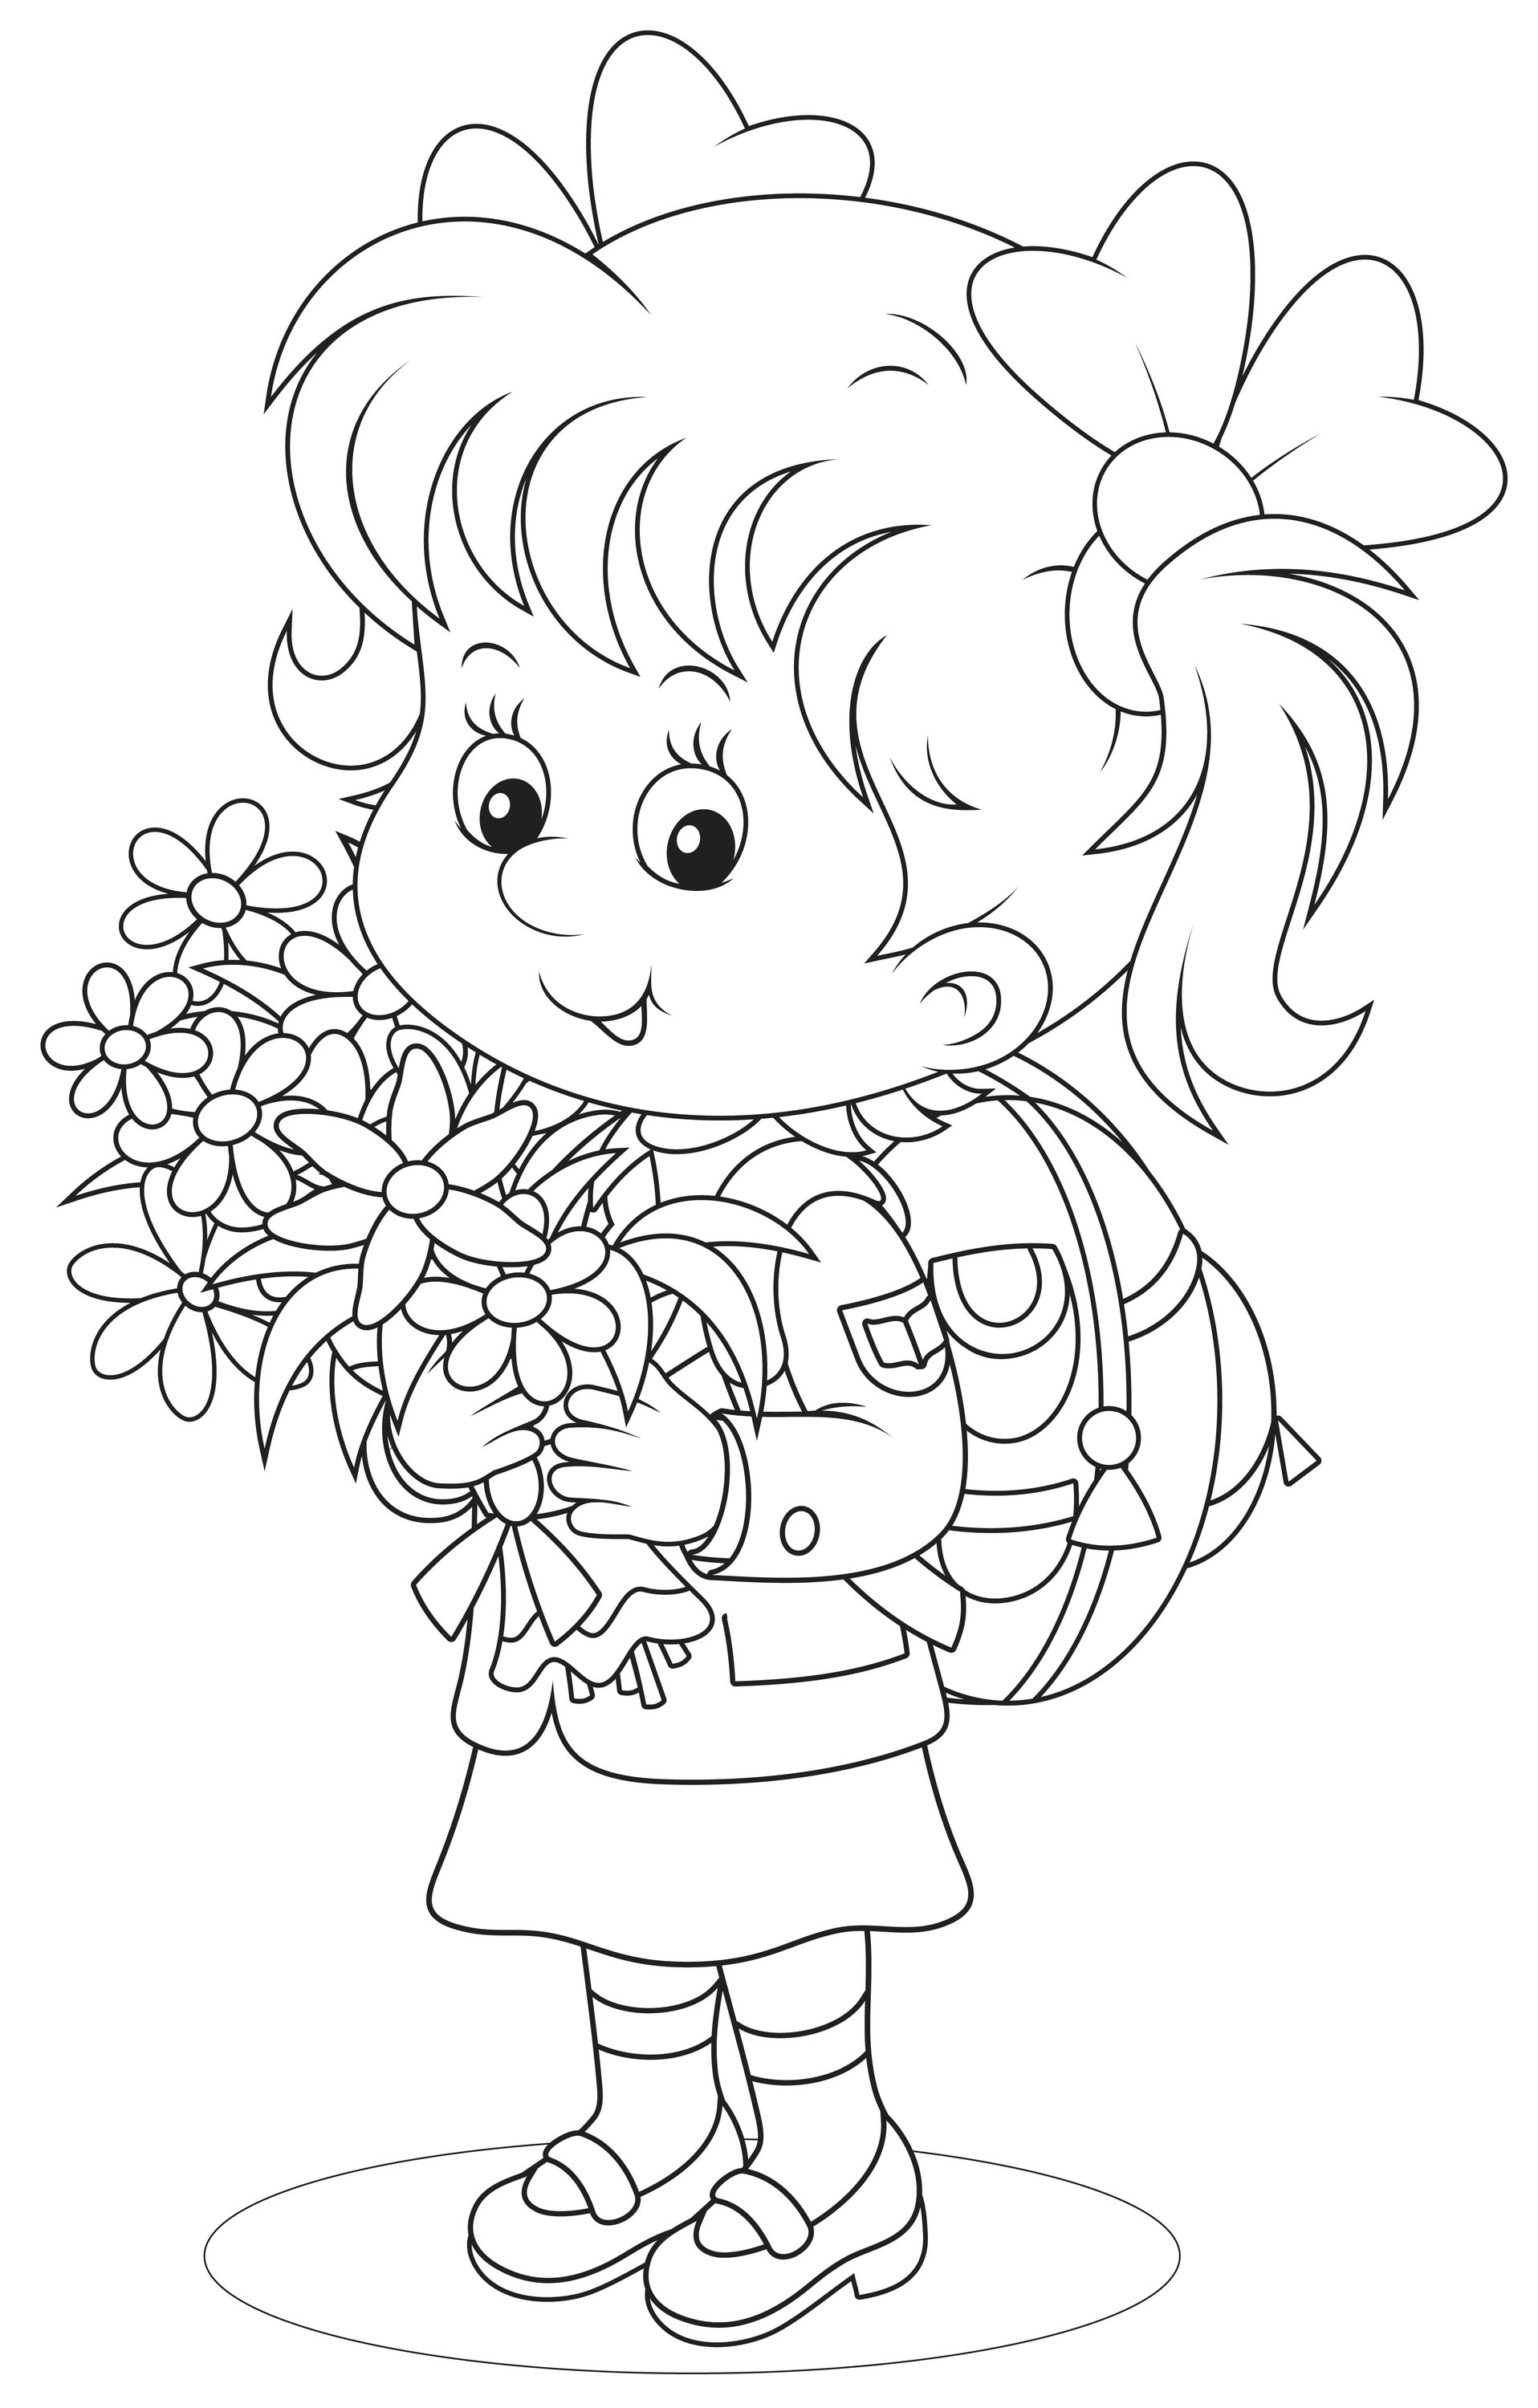 - The First Grader - Coloring Pages For You